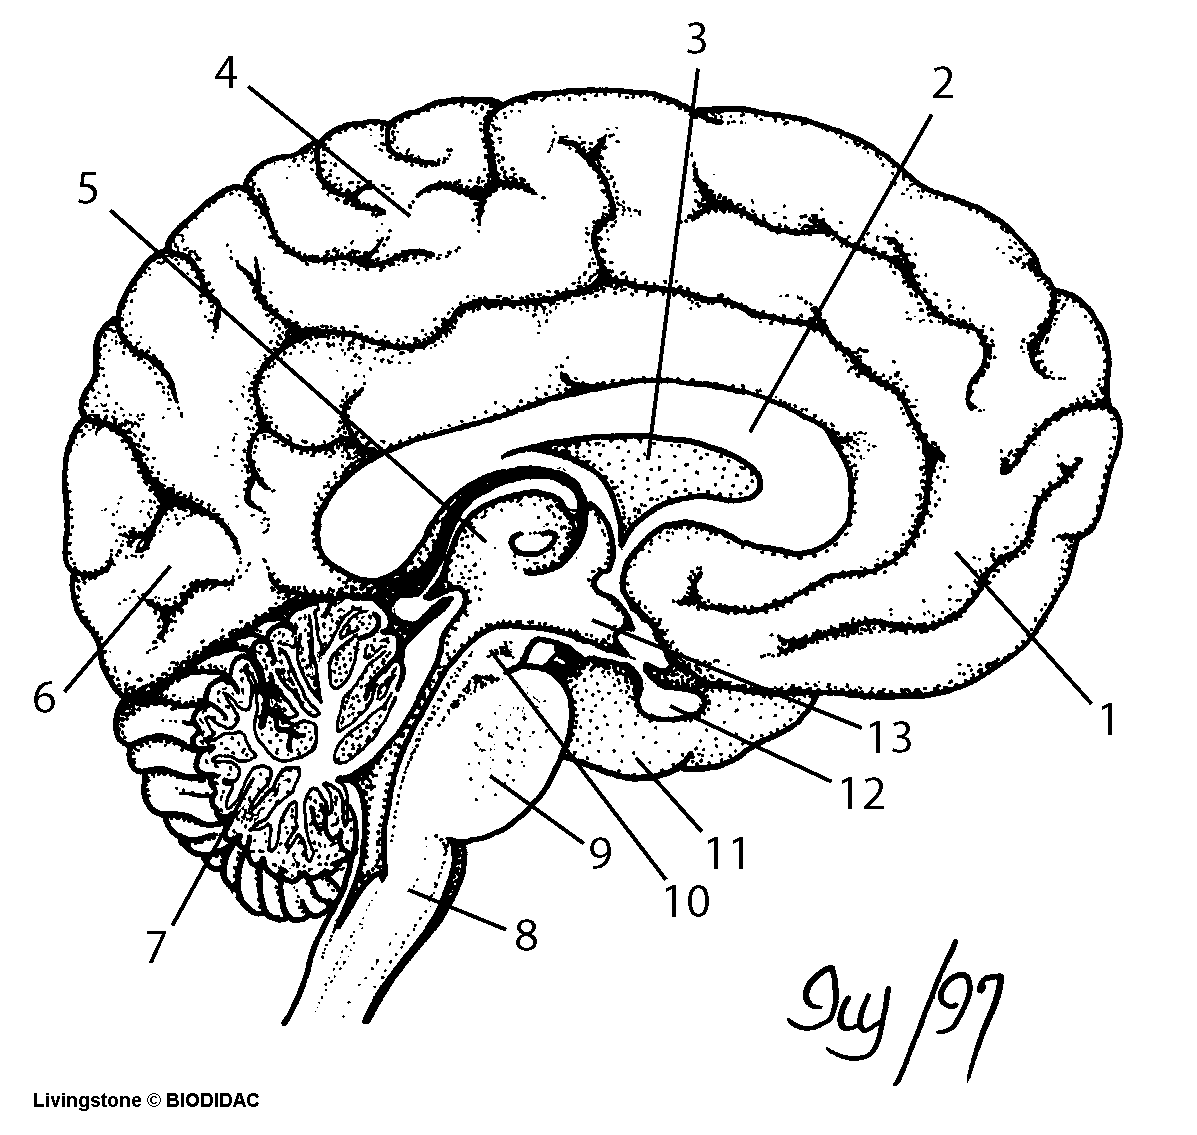 hight resolution of 1197x1135 the nervous system 1197x1135 the nervous system 960x720 blank brain diagram to label